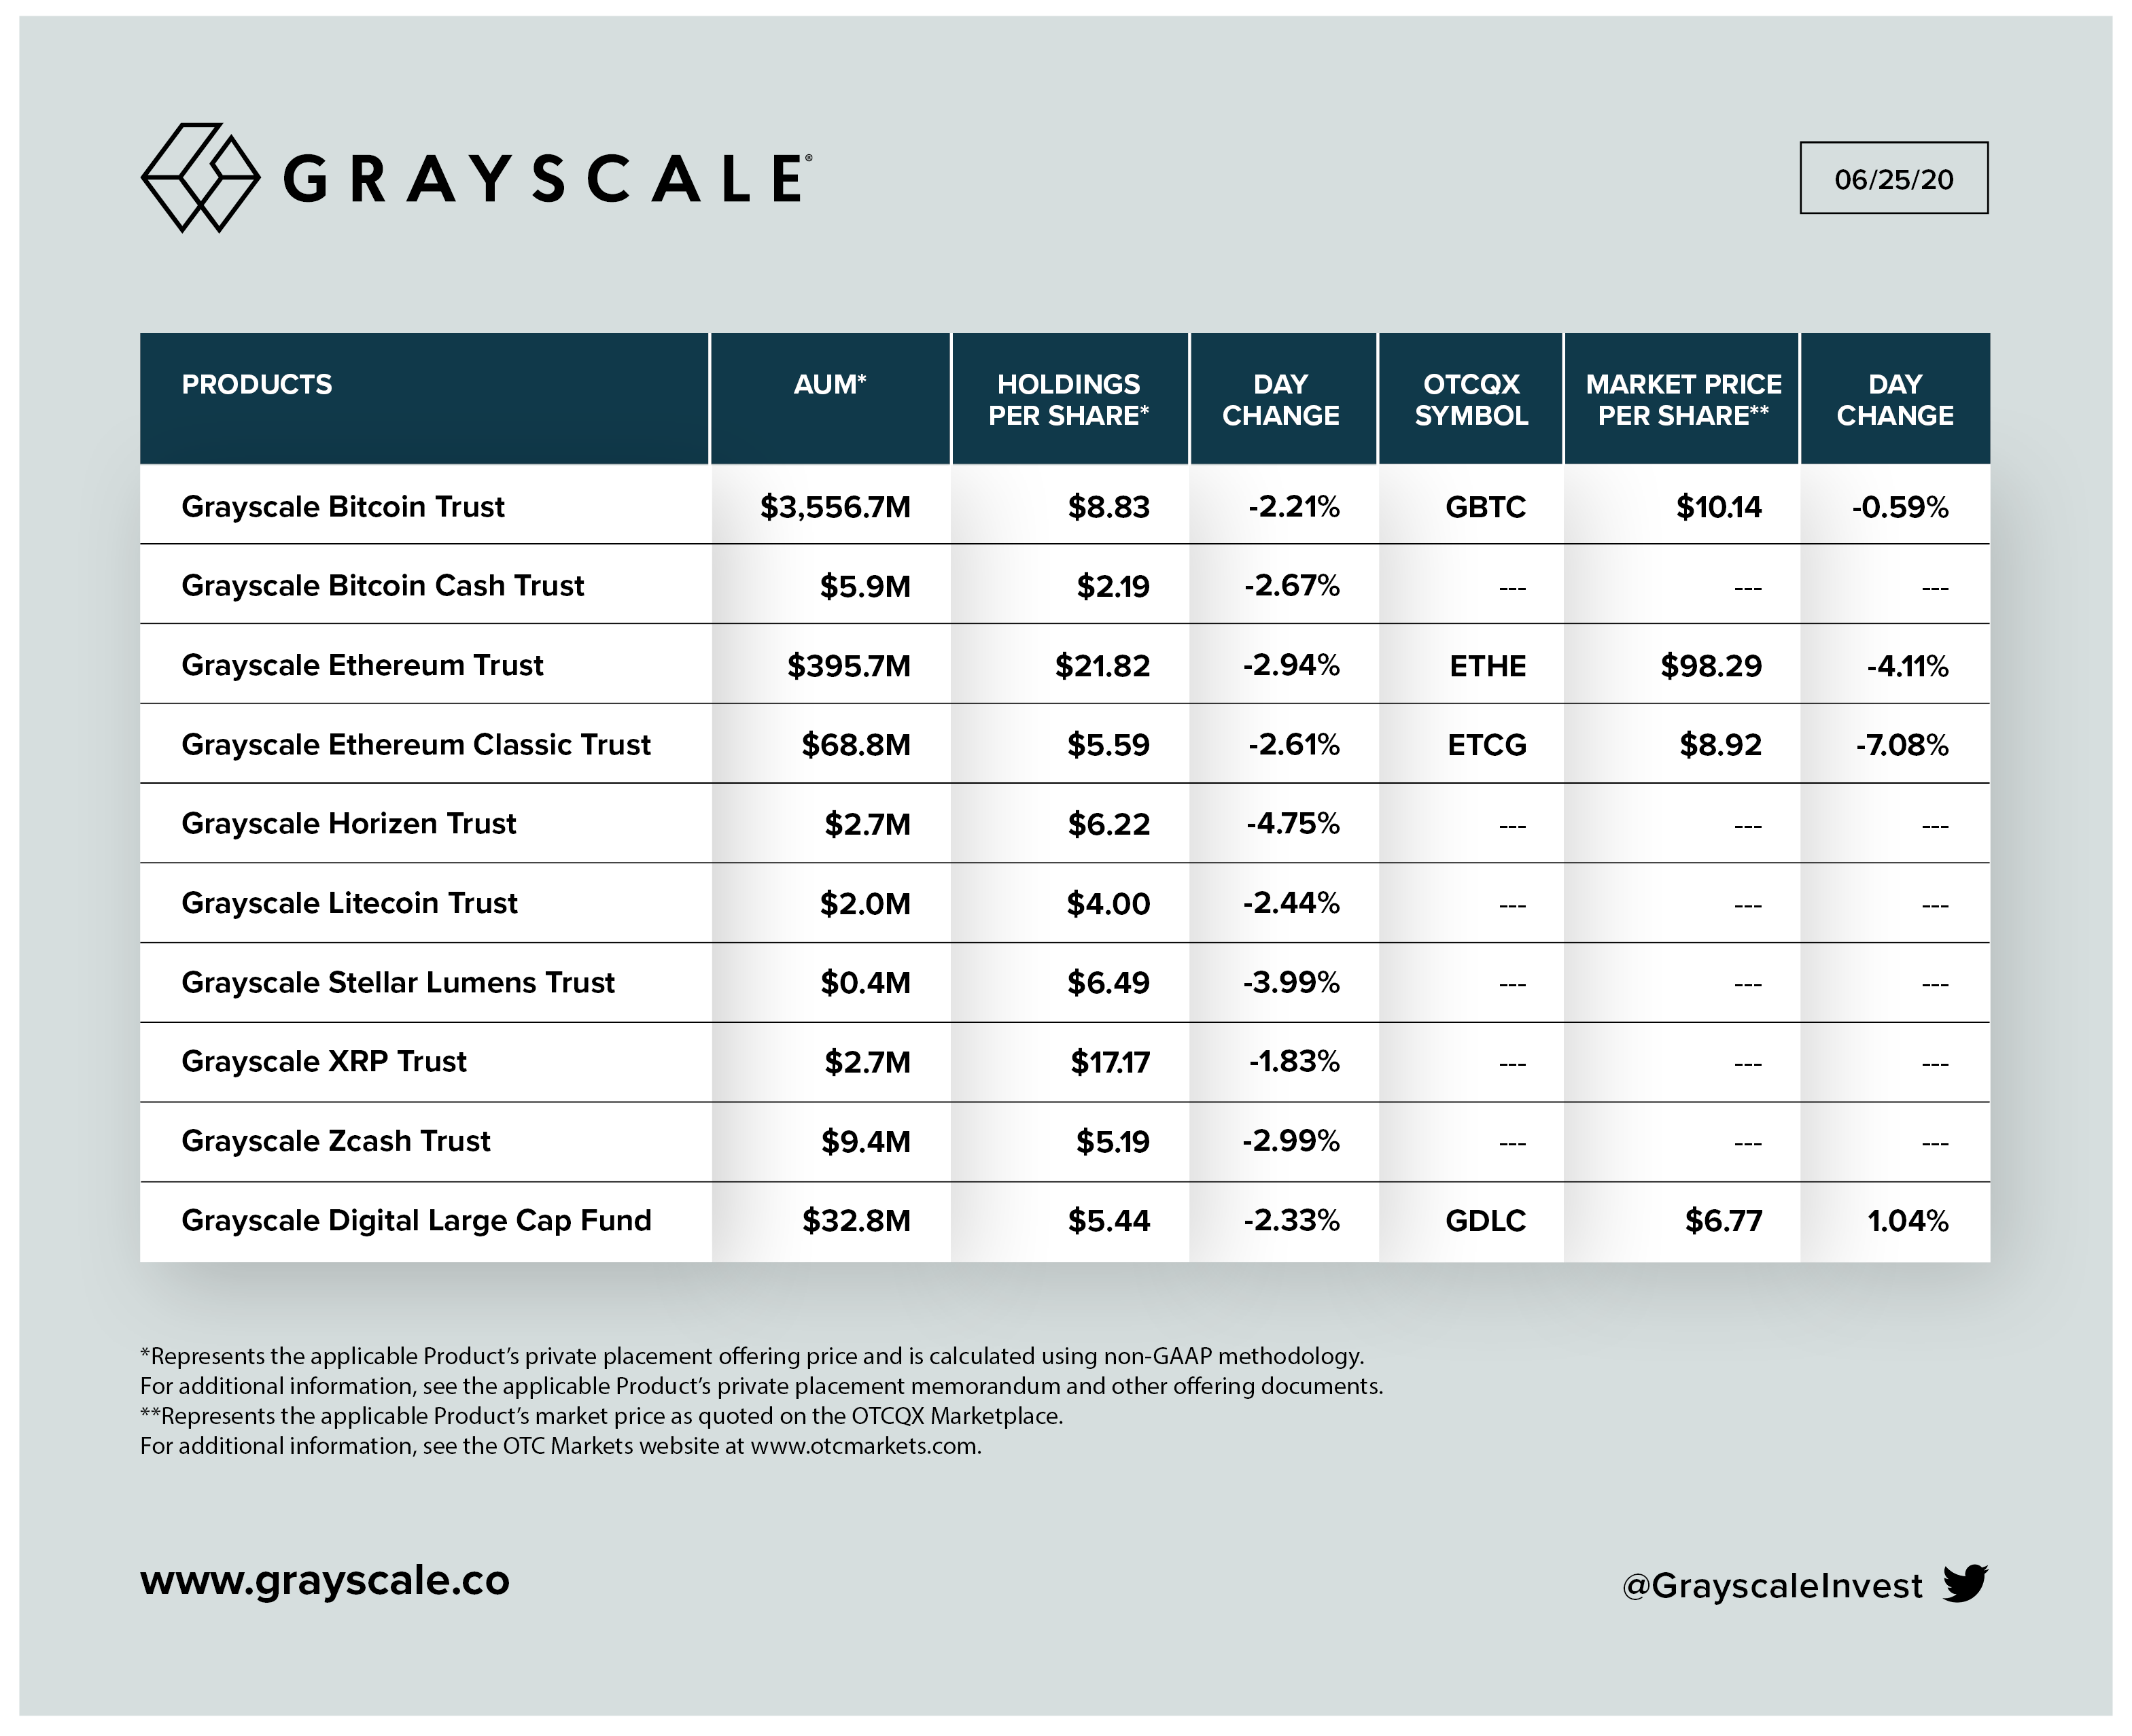 Bitcoin Investment Trust is the largest Grayscale trust